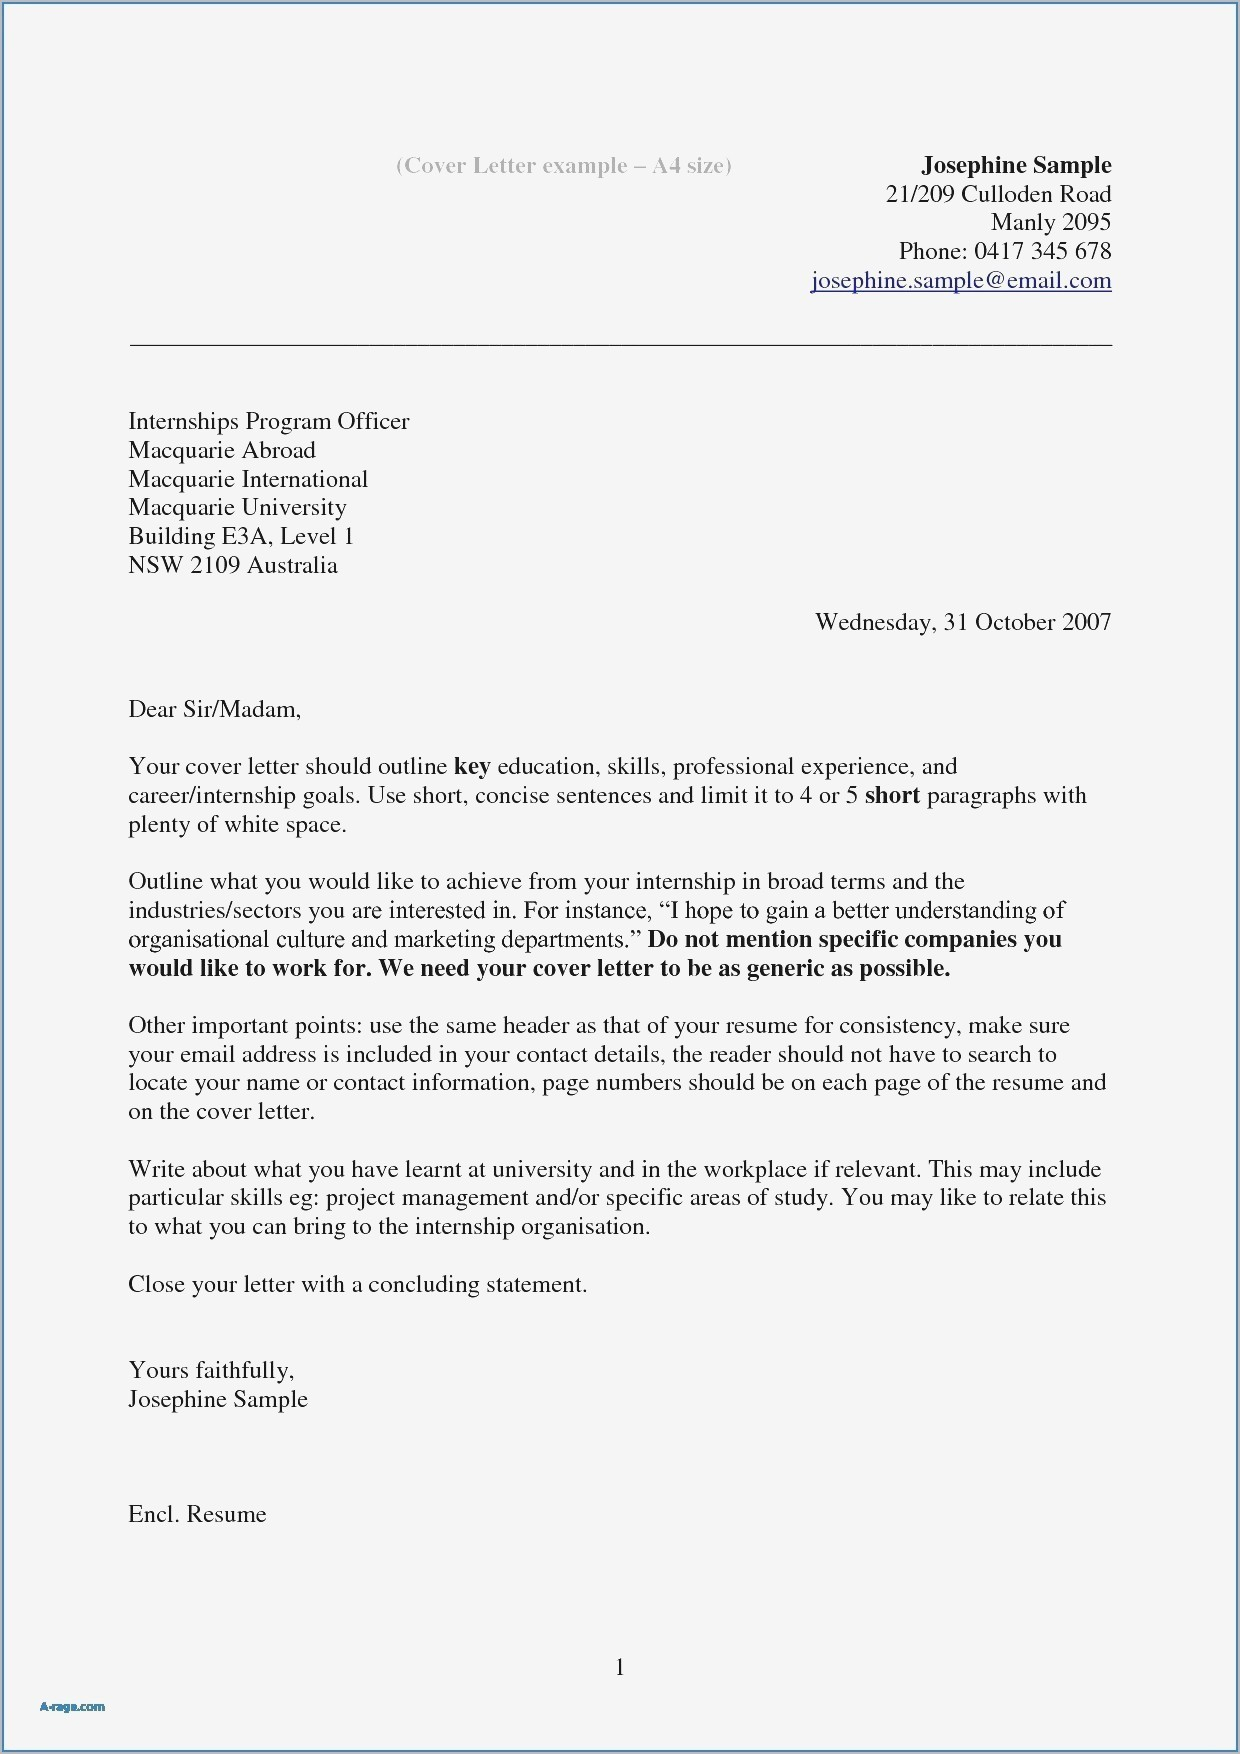 Free Introduction Letter Template - Free Resume Cover Letter Beautiful Best Pr Resume Template Elegant